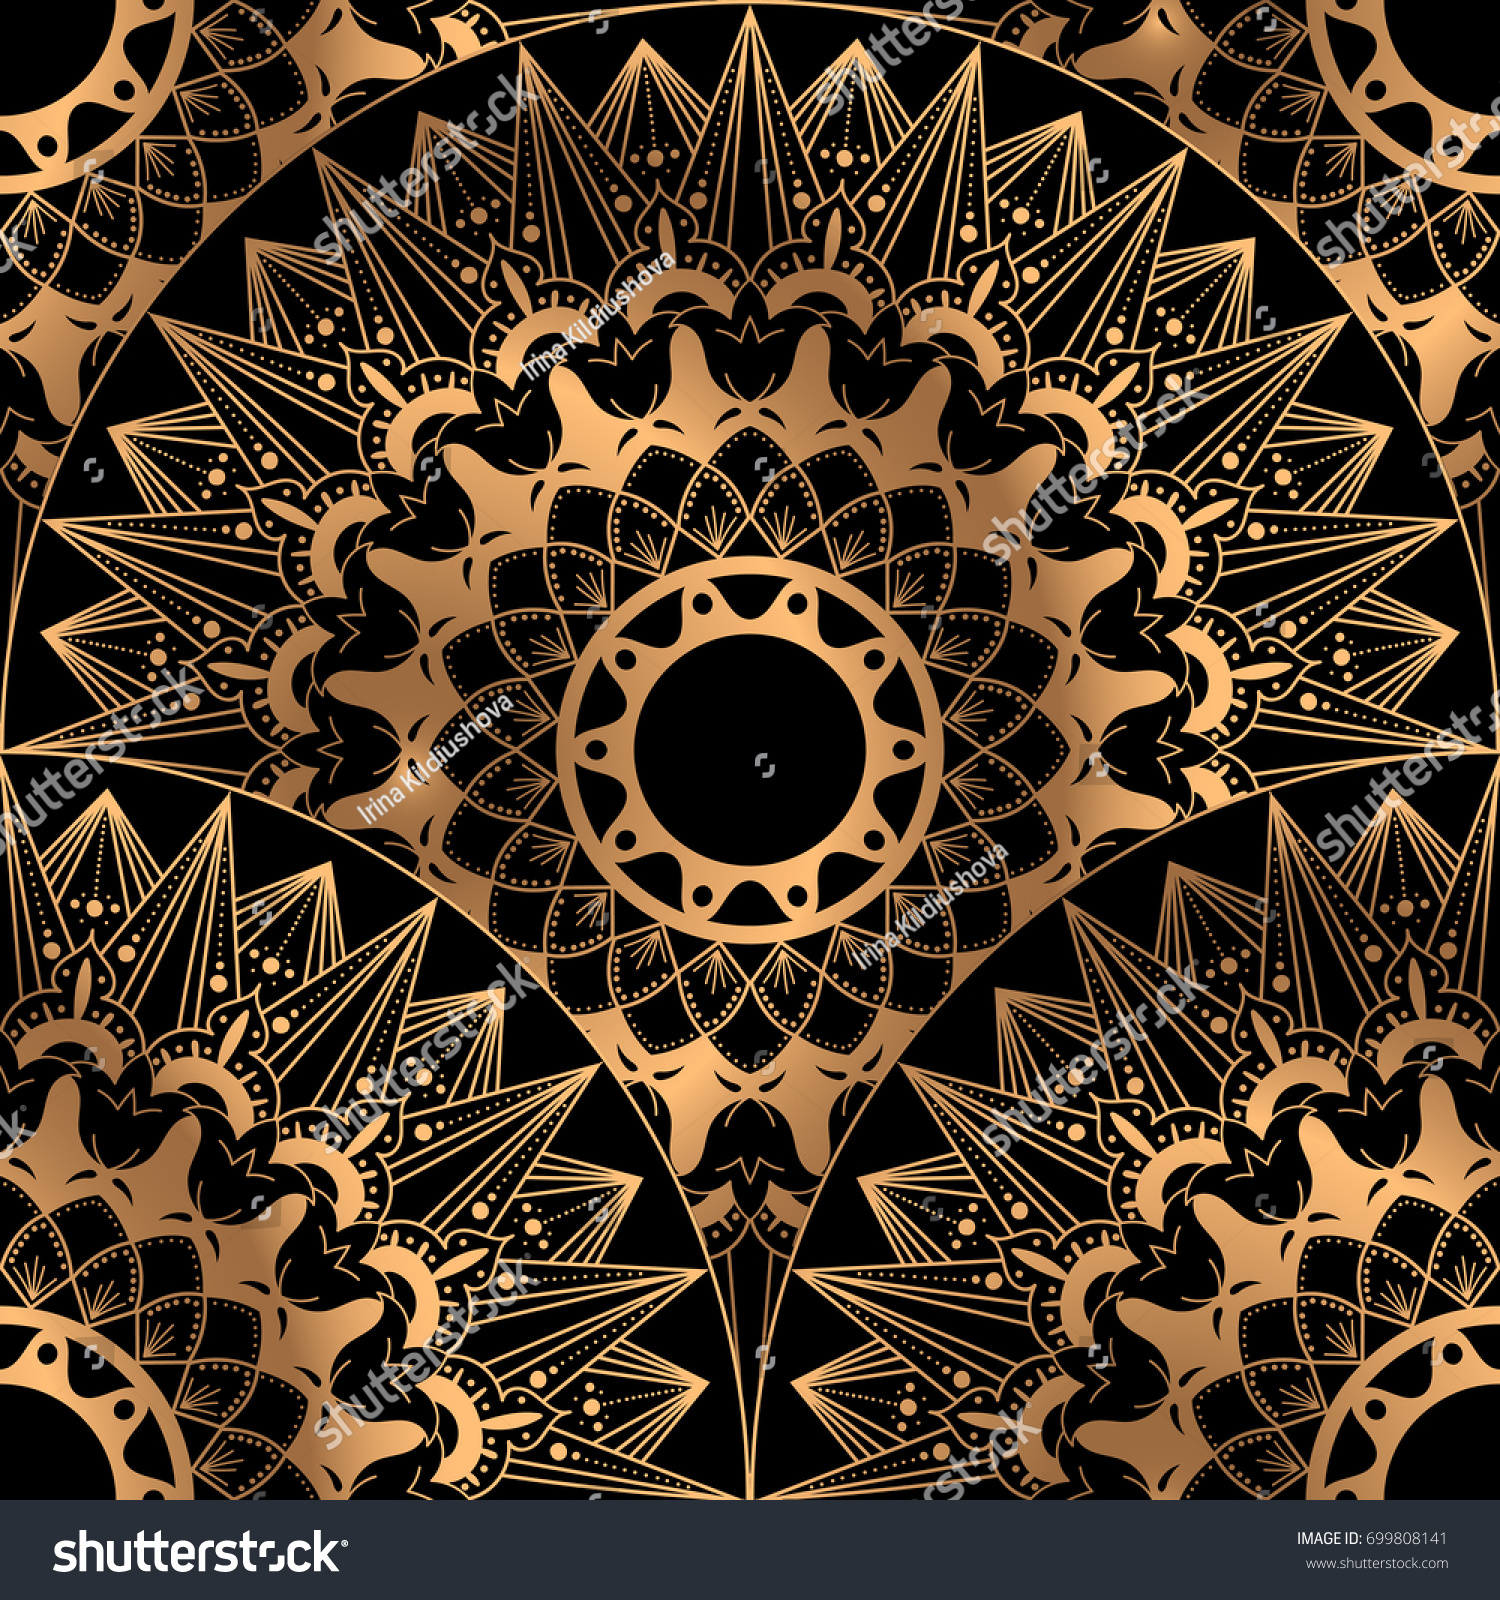 Cool Wallpaper Marble Mandala - stock-vector-golden-luxury-background-vector-gold-black-scale-pattern-seamless-design-indian-mandala-ornament-699808141  Snapshot_616896.jpg